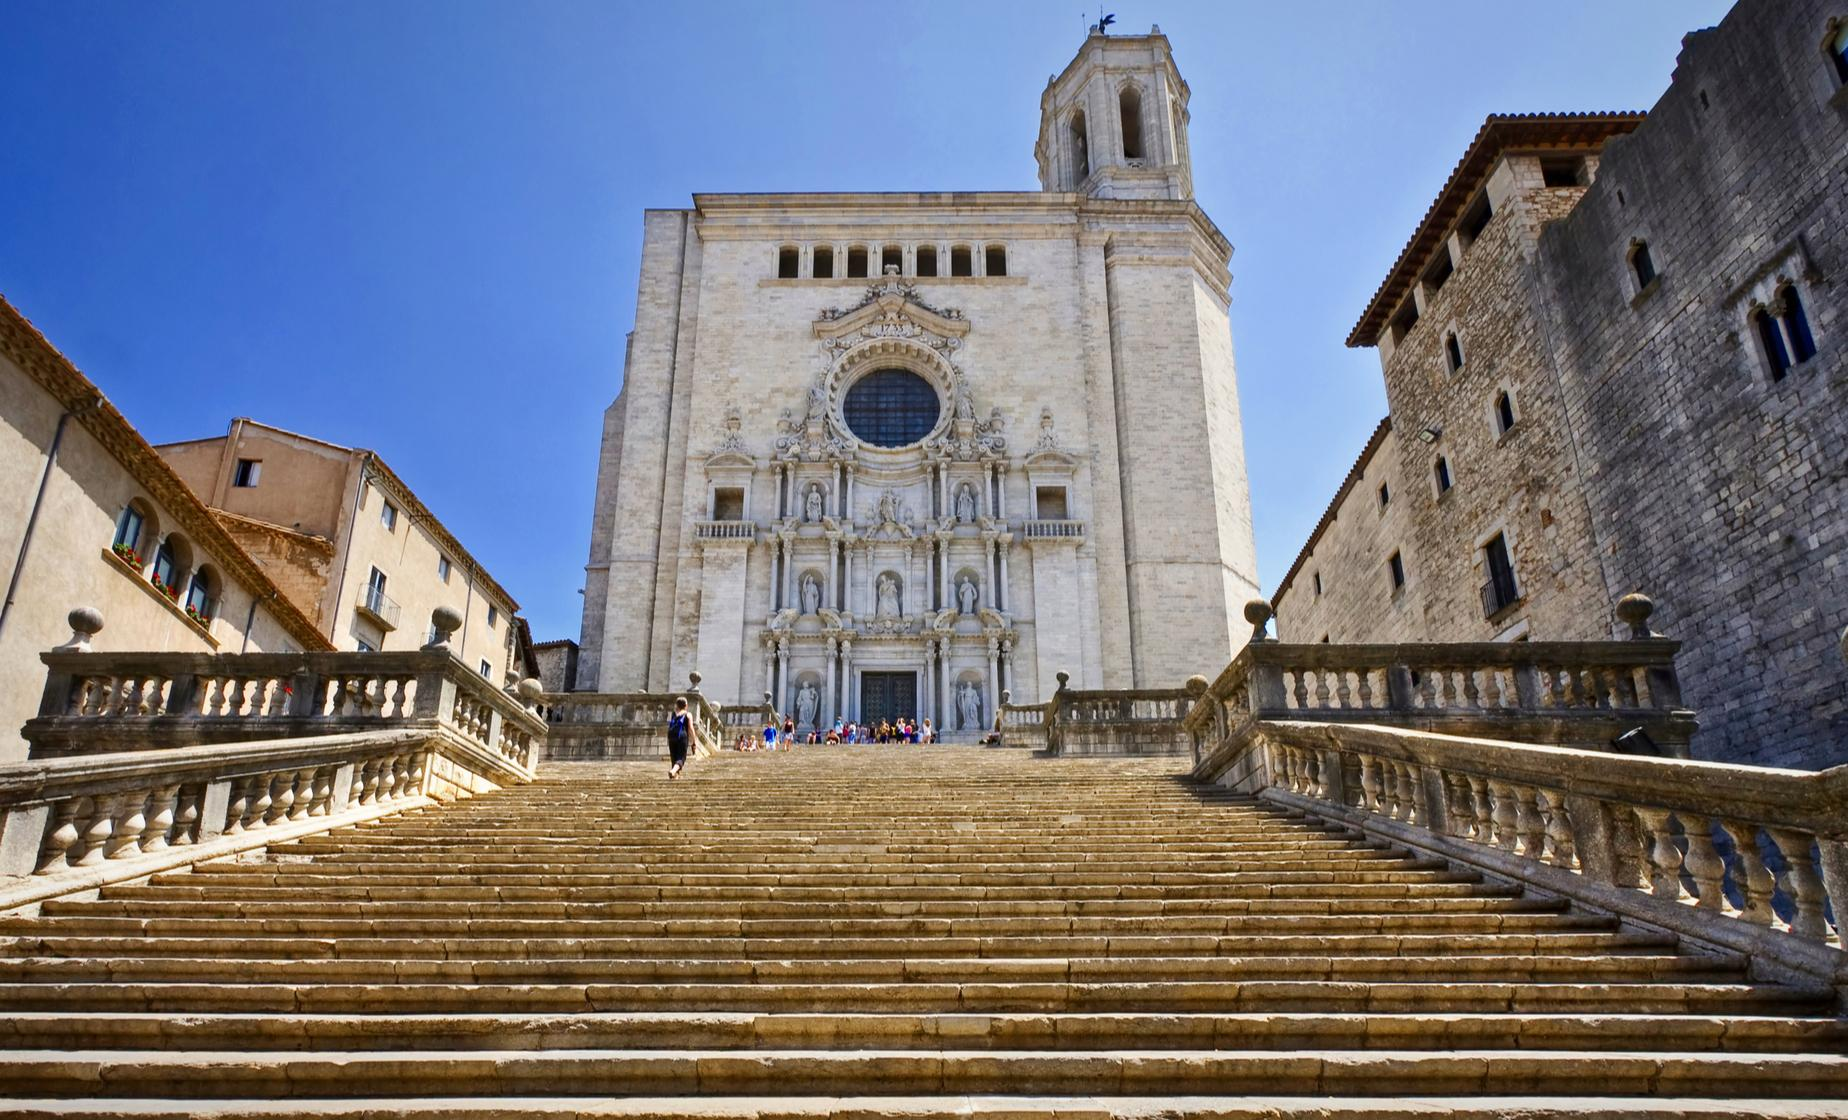 Girona's Games of Thrones Tour